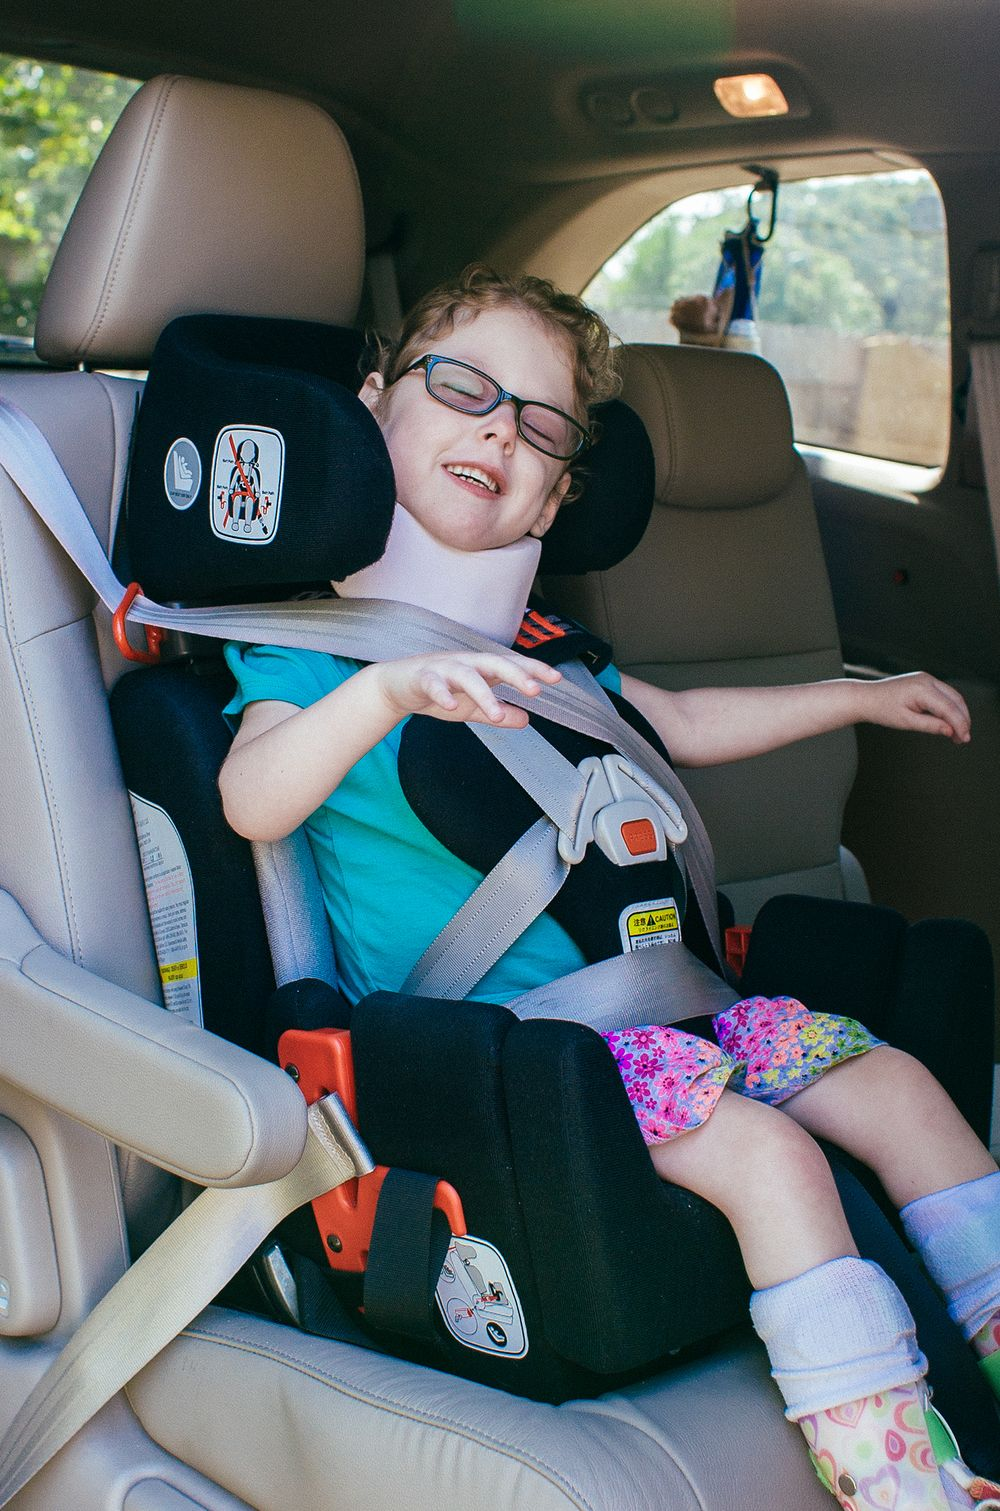 Carrot 3 a Special Needs Car Seat by Convaid Car seats